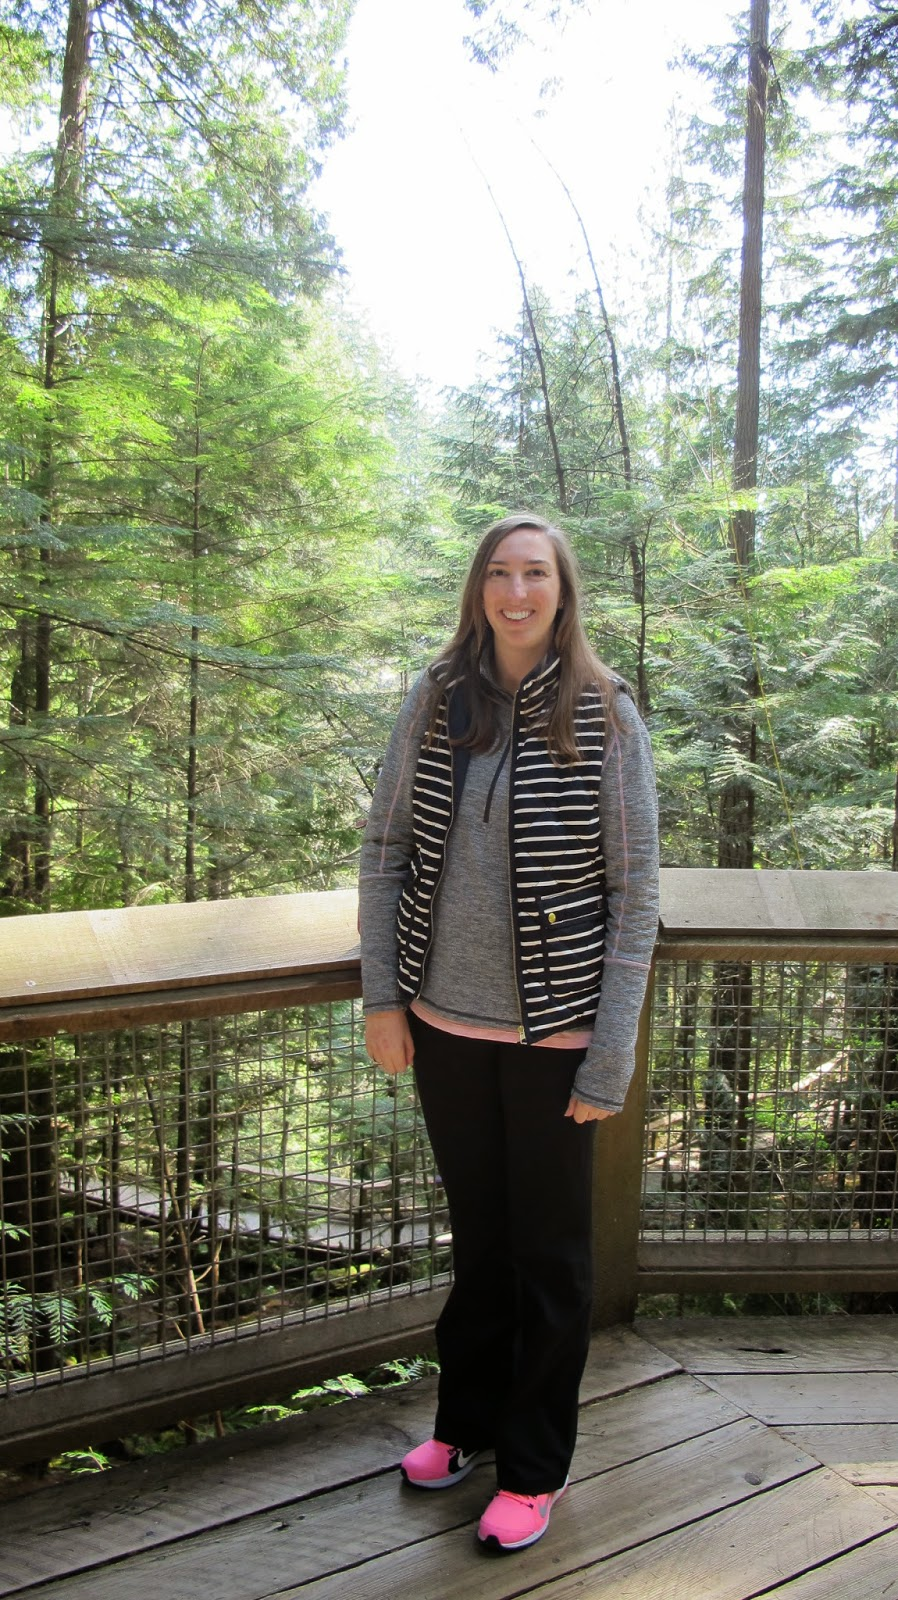 Pacific Northwest Trip: Vancouver Capilano Suspension Bridge Park